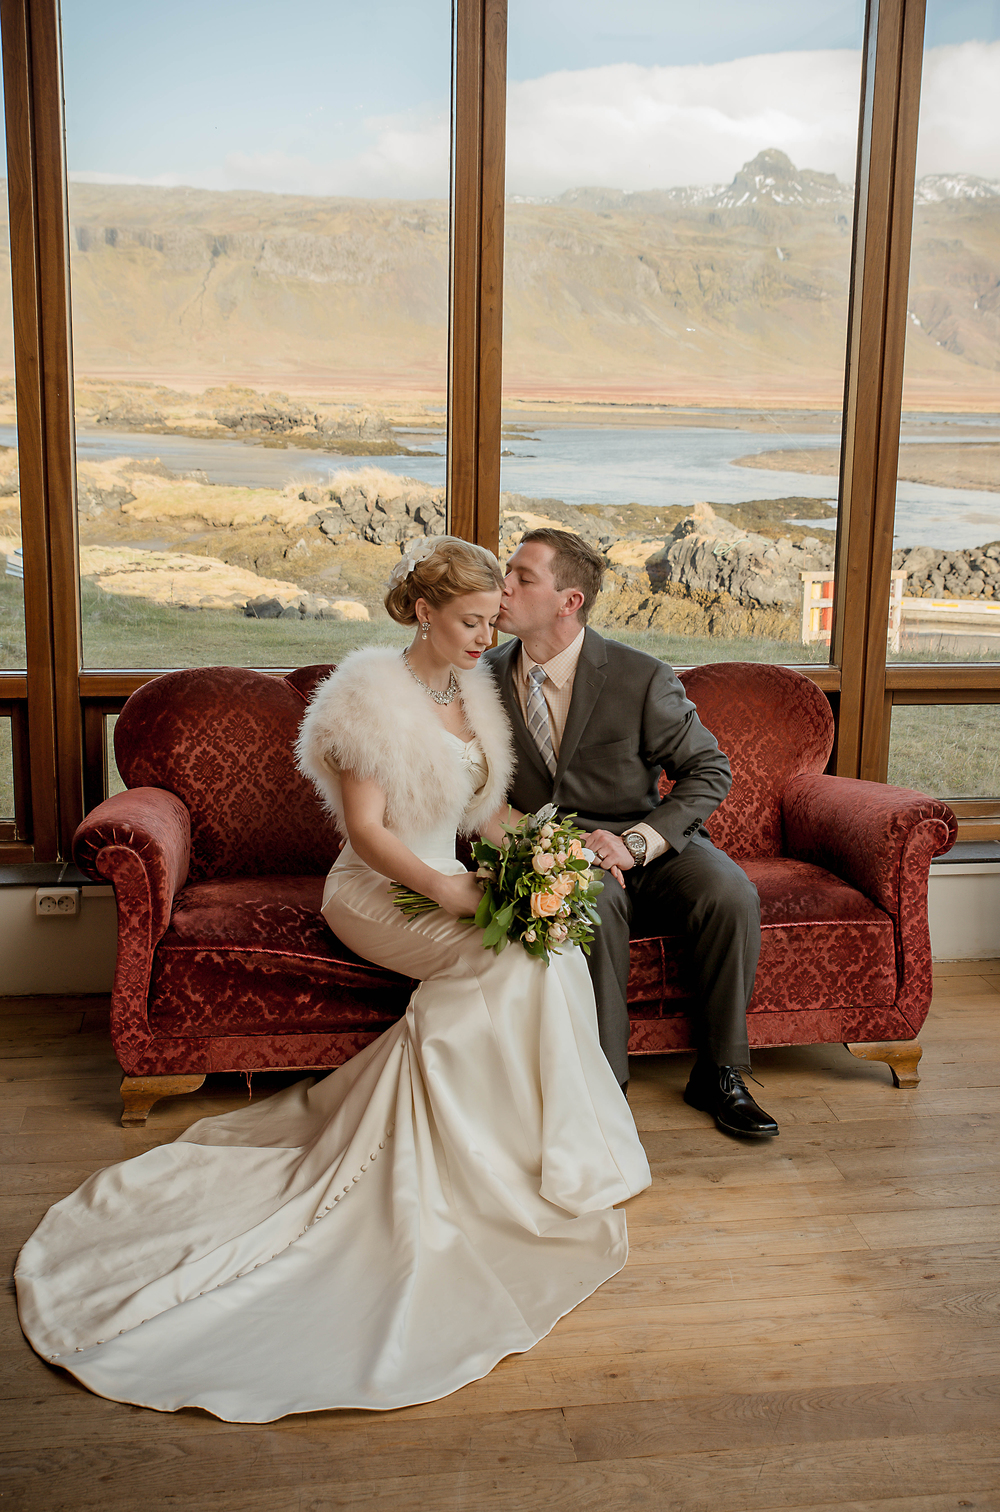 Iceland-Wedding-Photographer-Photos-by-Miss-Ann-11.jpg